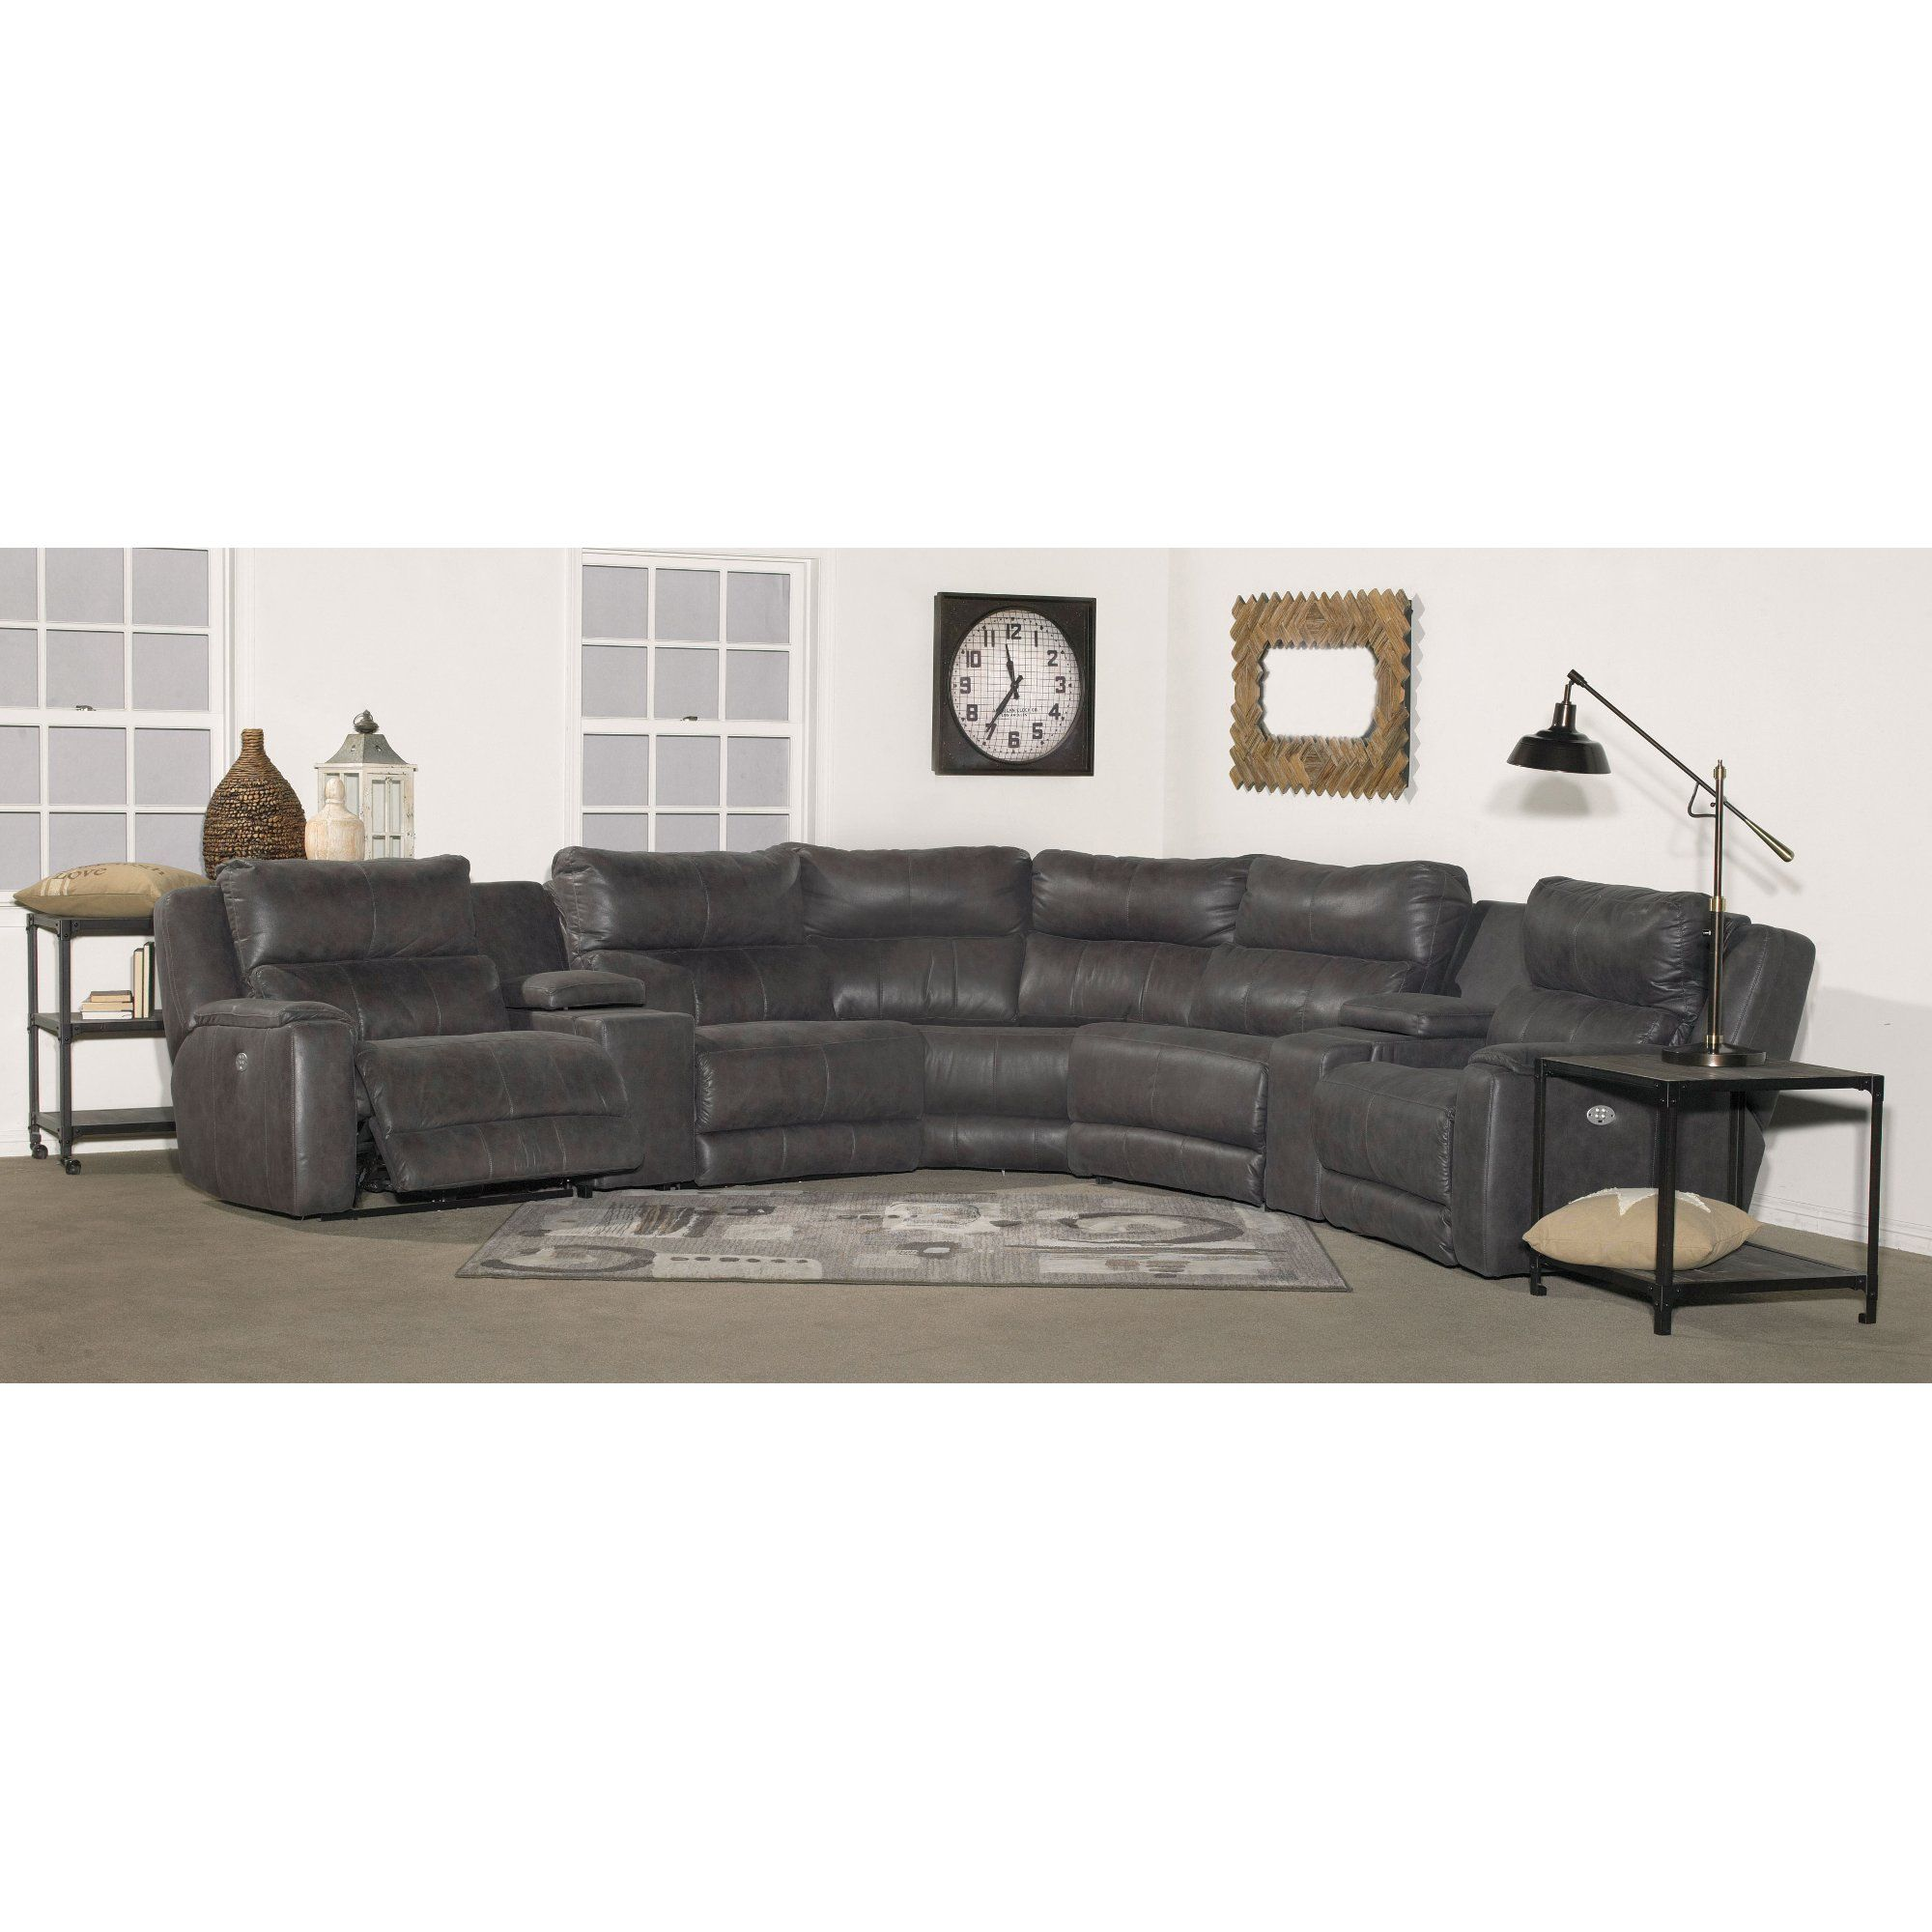 Best Slate Gray 7 Piece Power Reclining Sectional Sofa Dazzle 640 x 480